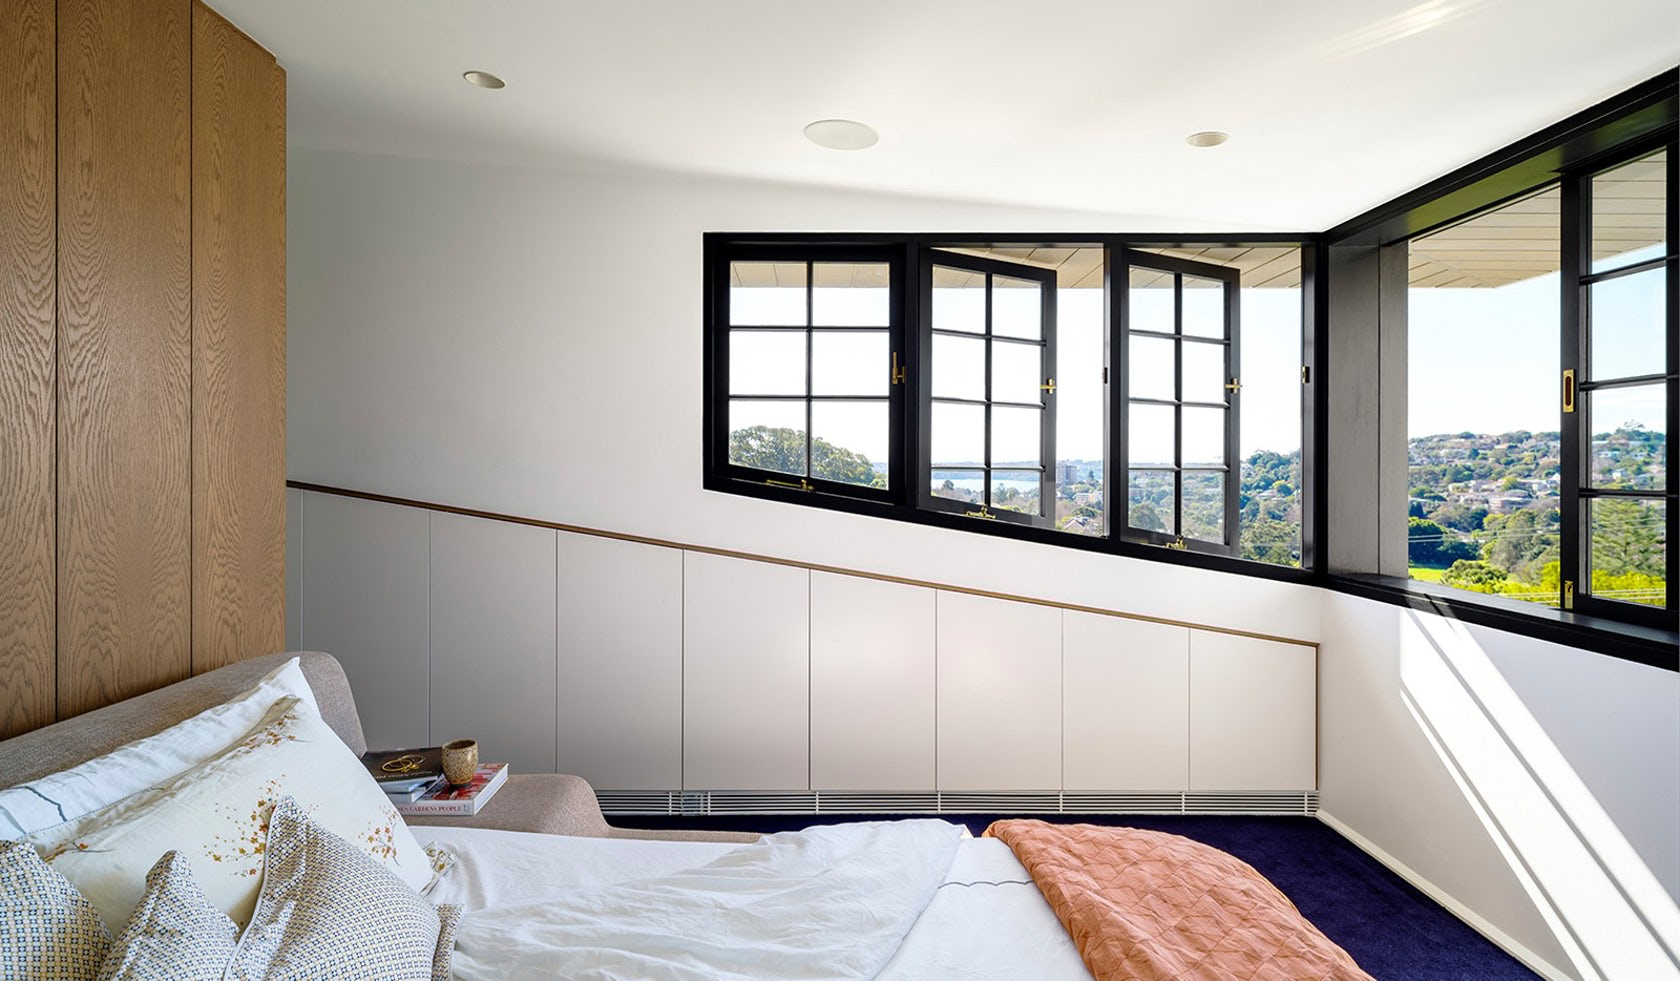 Home Makeover in a Mid-Century Modern Residence in Sydney! home makeover Home Makeover in a Mid-Century Modern Residence in Sydney! Home Makeover in a Mid Century Modern Residence in Sydney 7